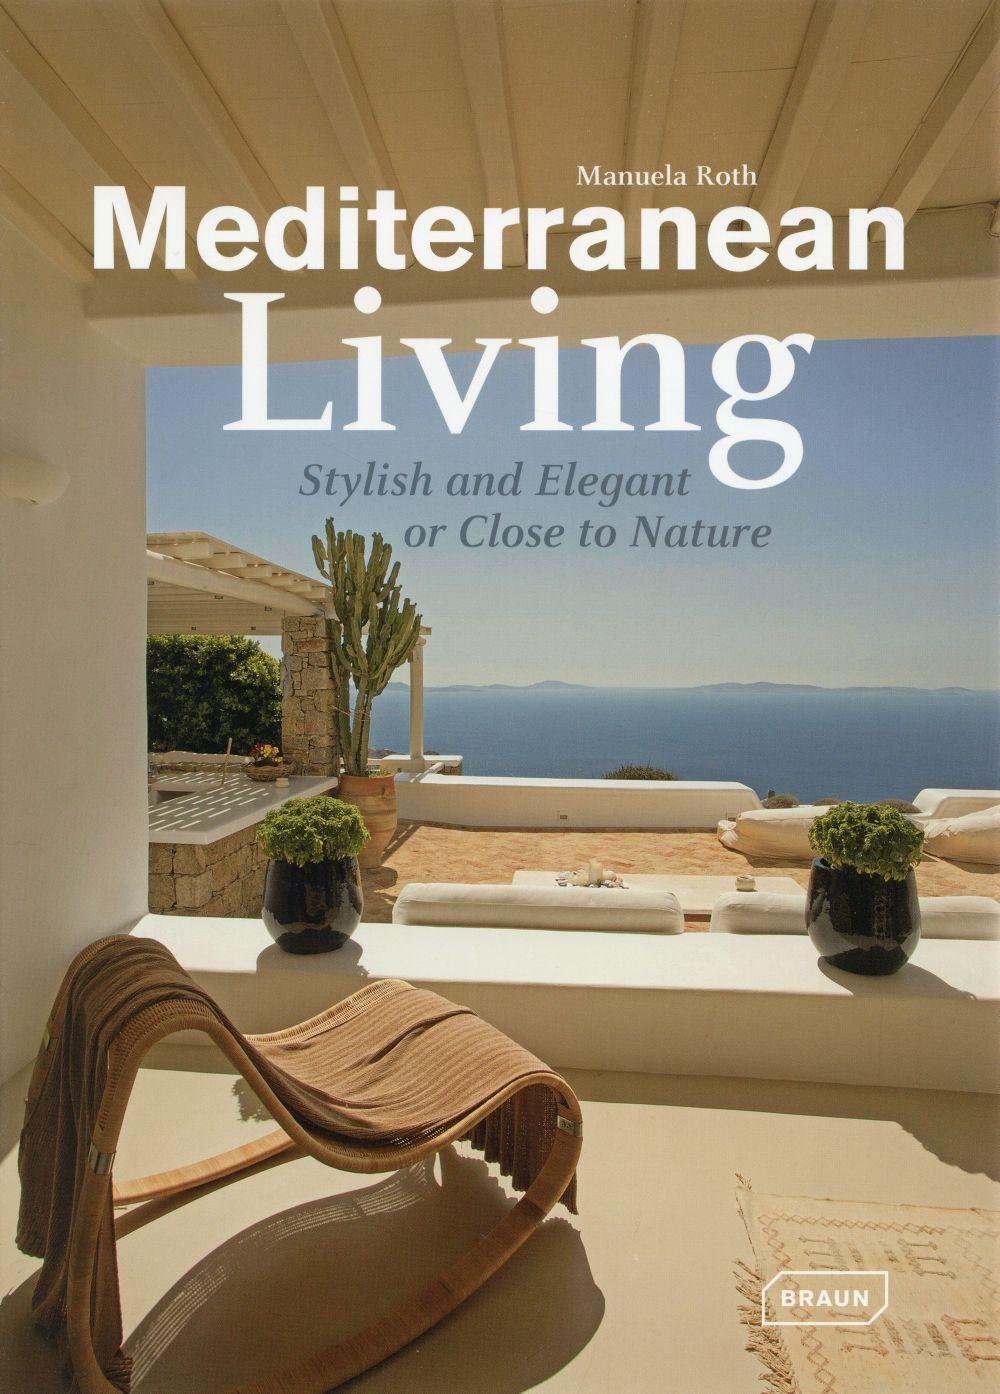 Mediterranean living ; stylish and elegant or close to nature  - Manuela Roth